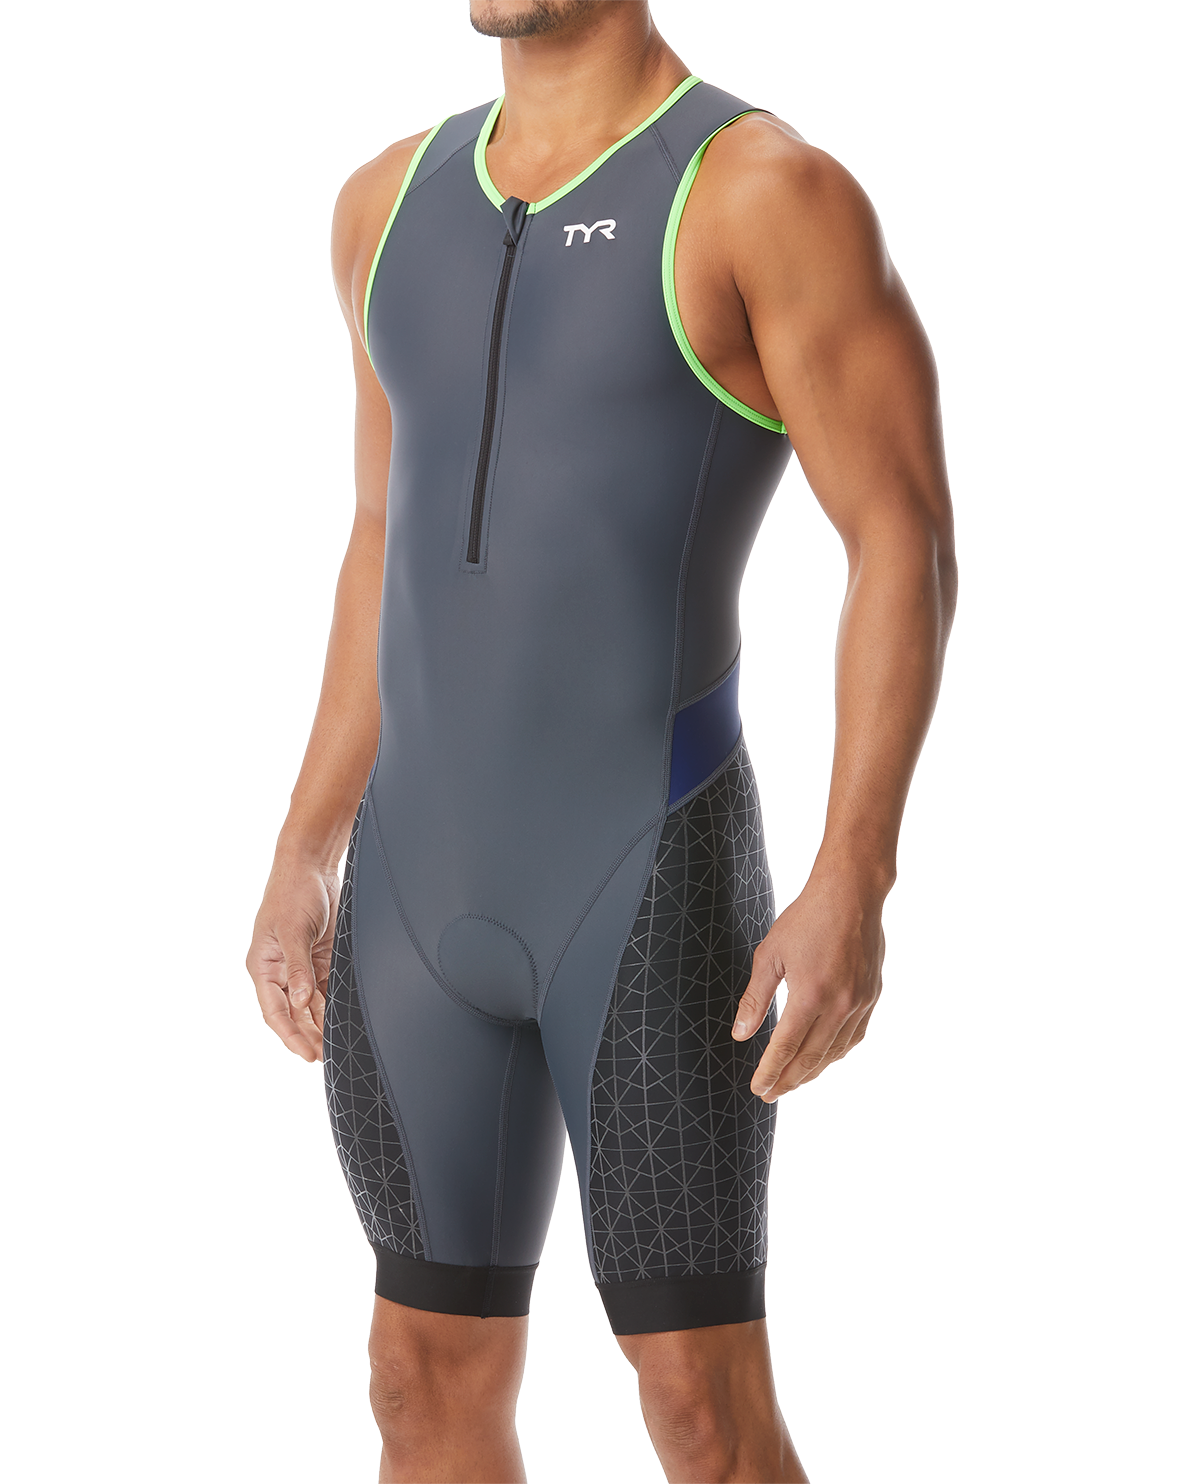 ede96f48e0 Tyr mens competitor tri suit tyr png 1200x1484 Tri full suit